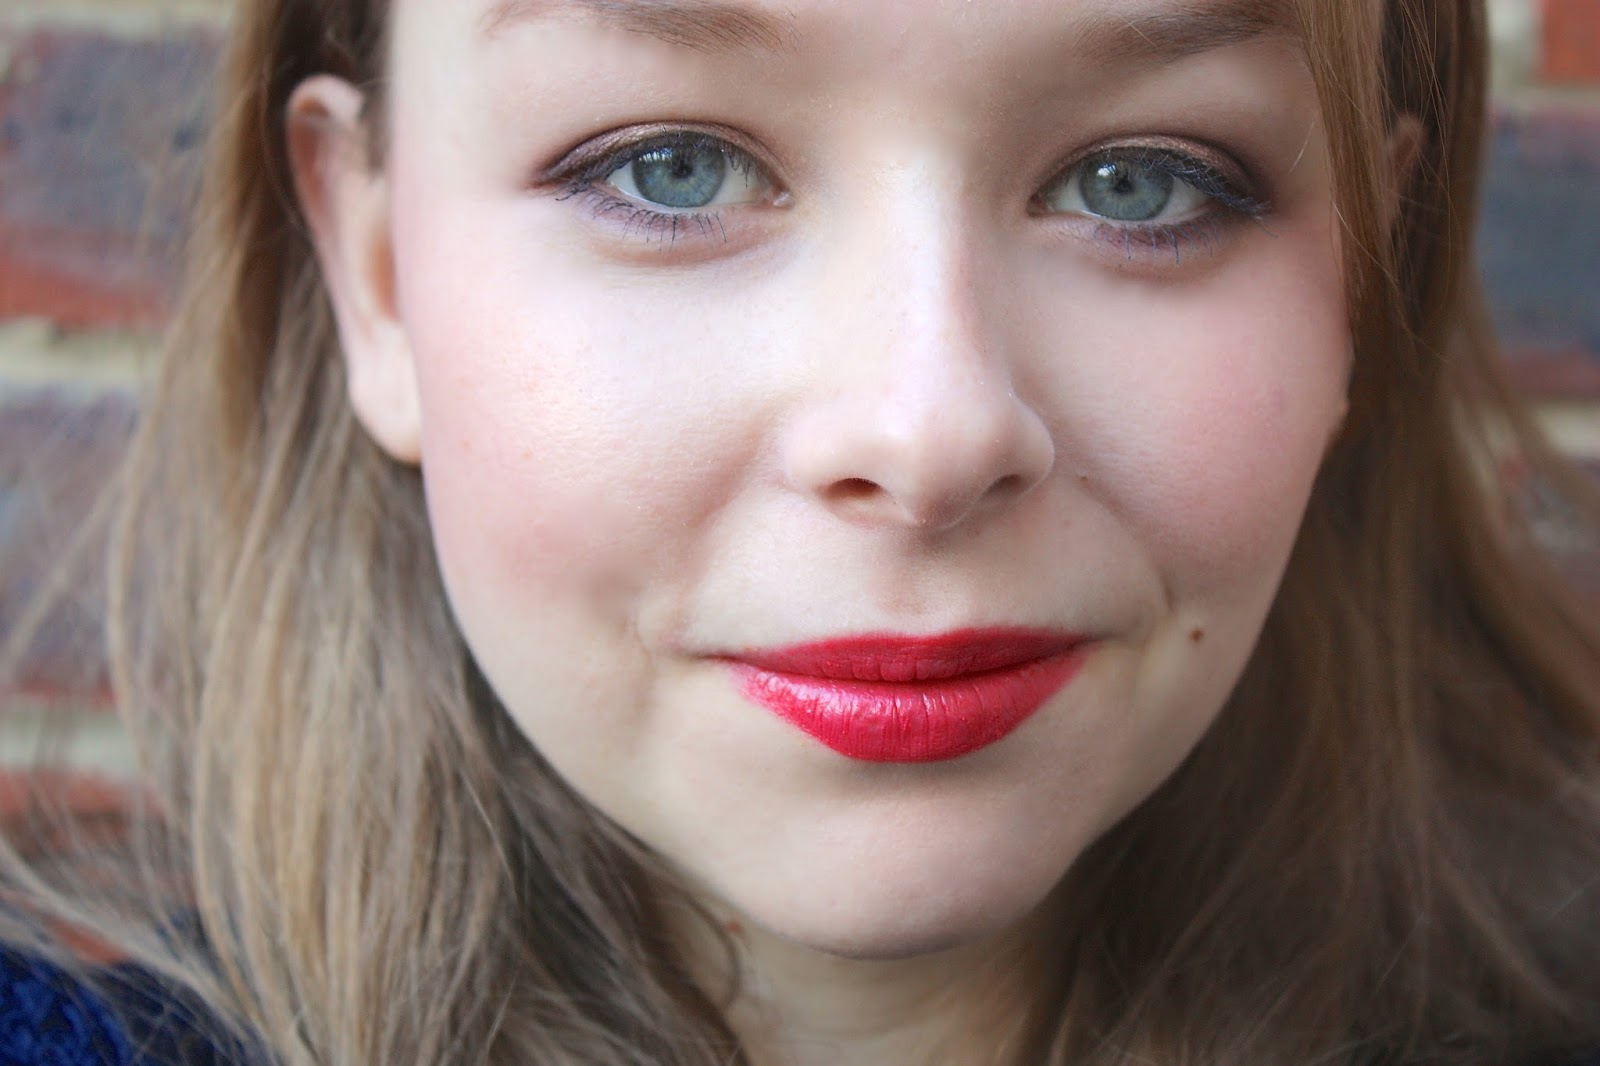 Bobbi Brown Sheer Lip Colour in Rosy Swatch